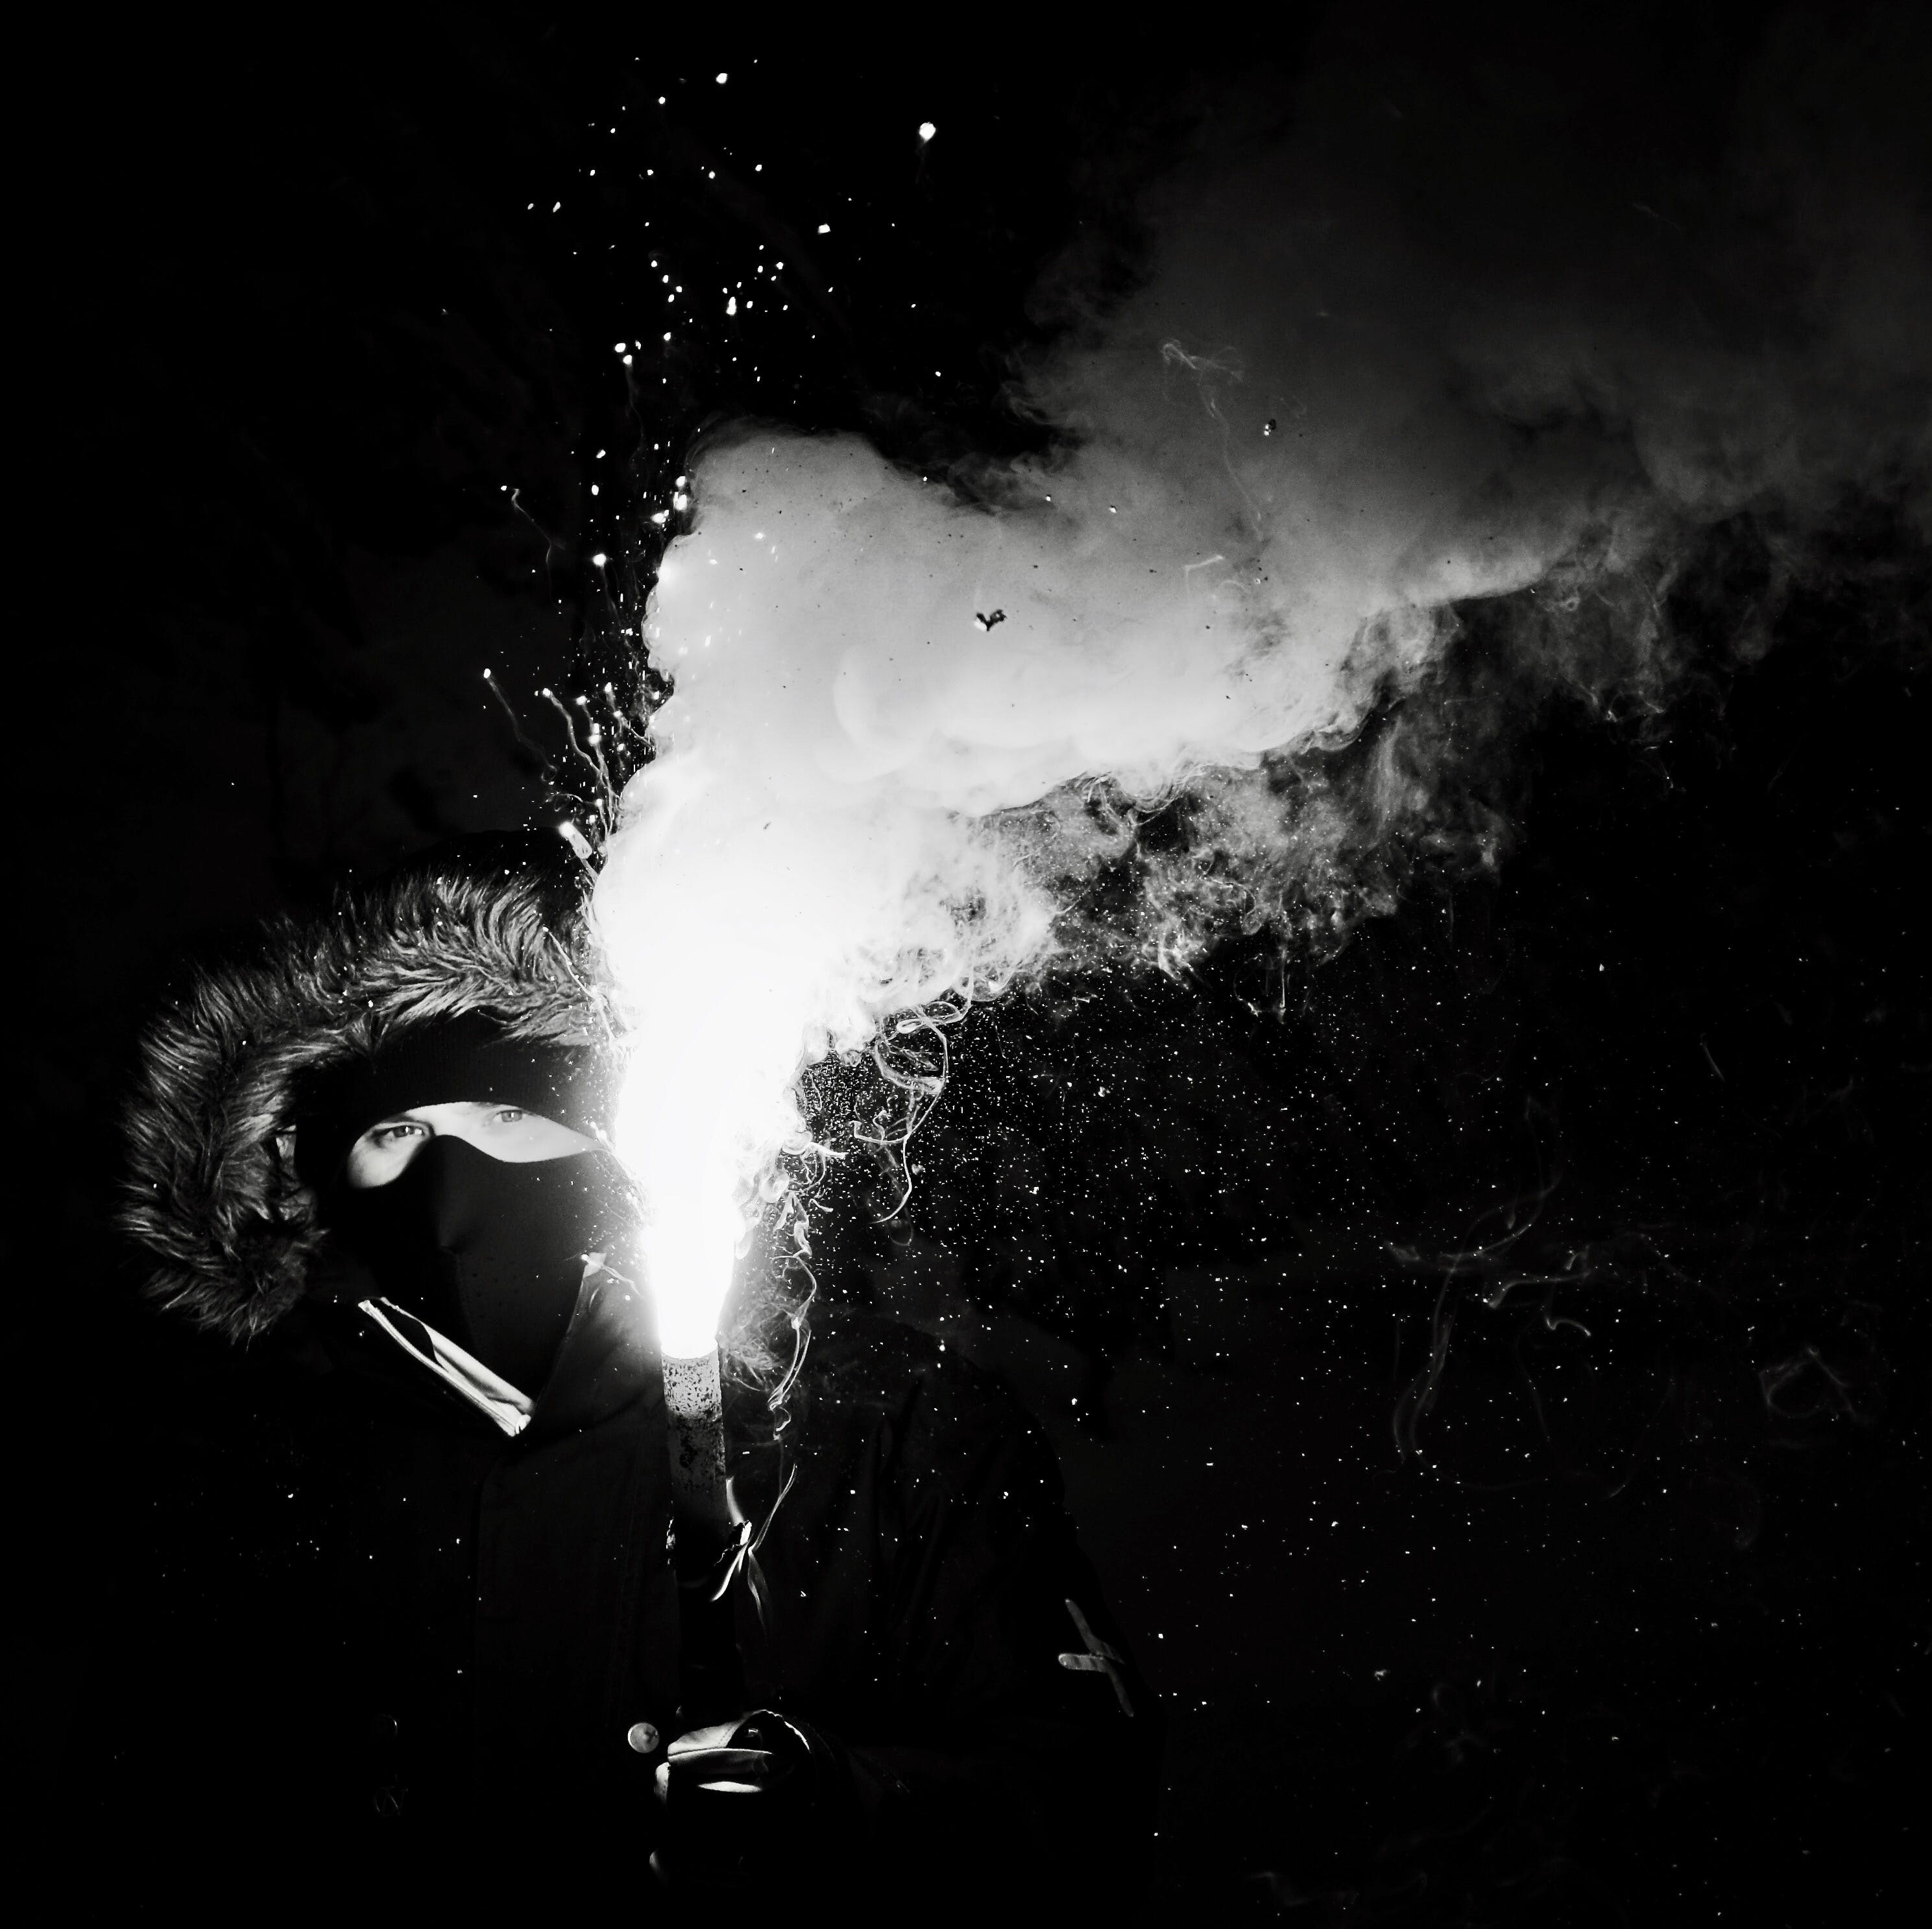 Grayscale Photography of Person Holding Flare